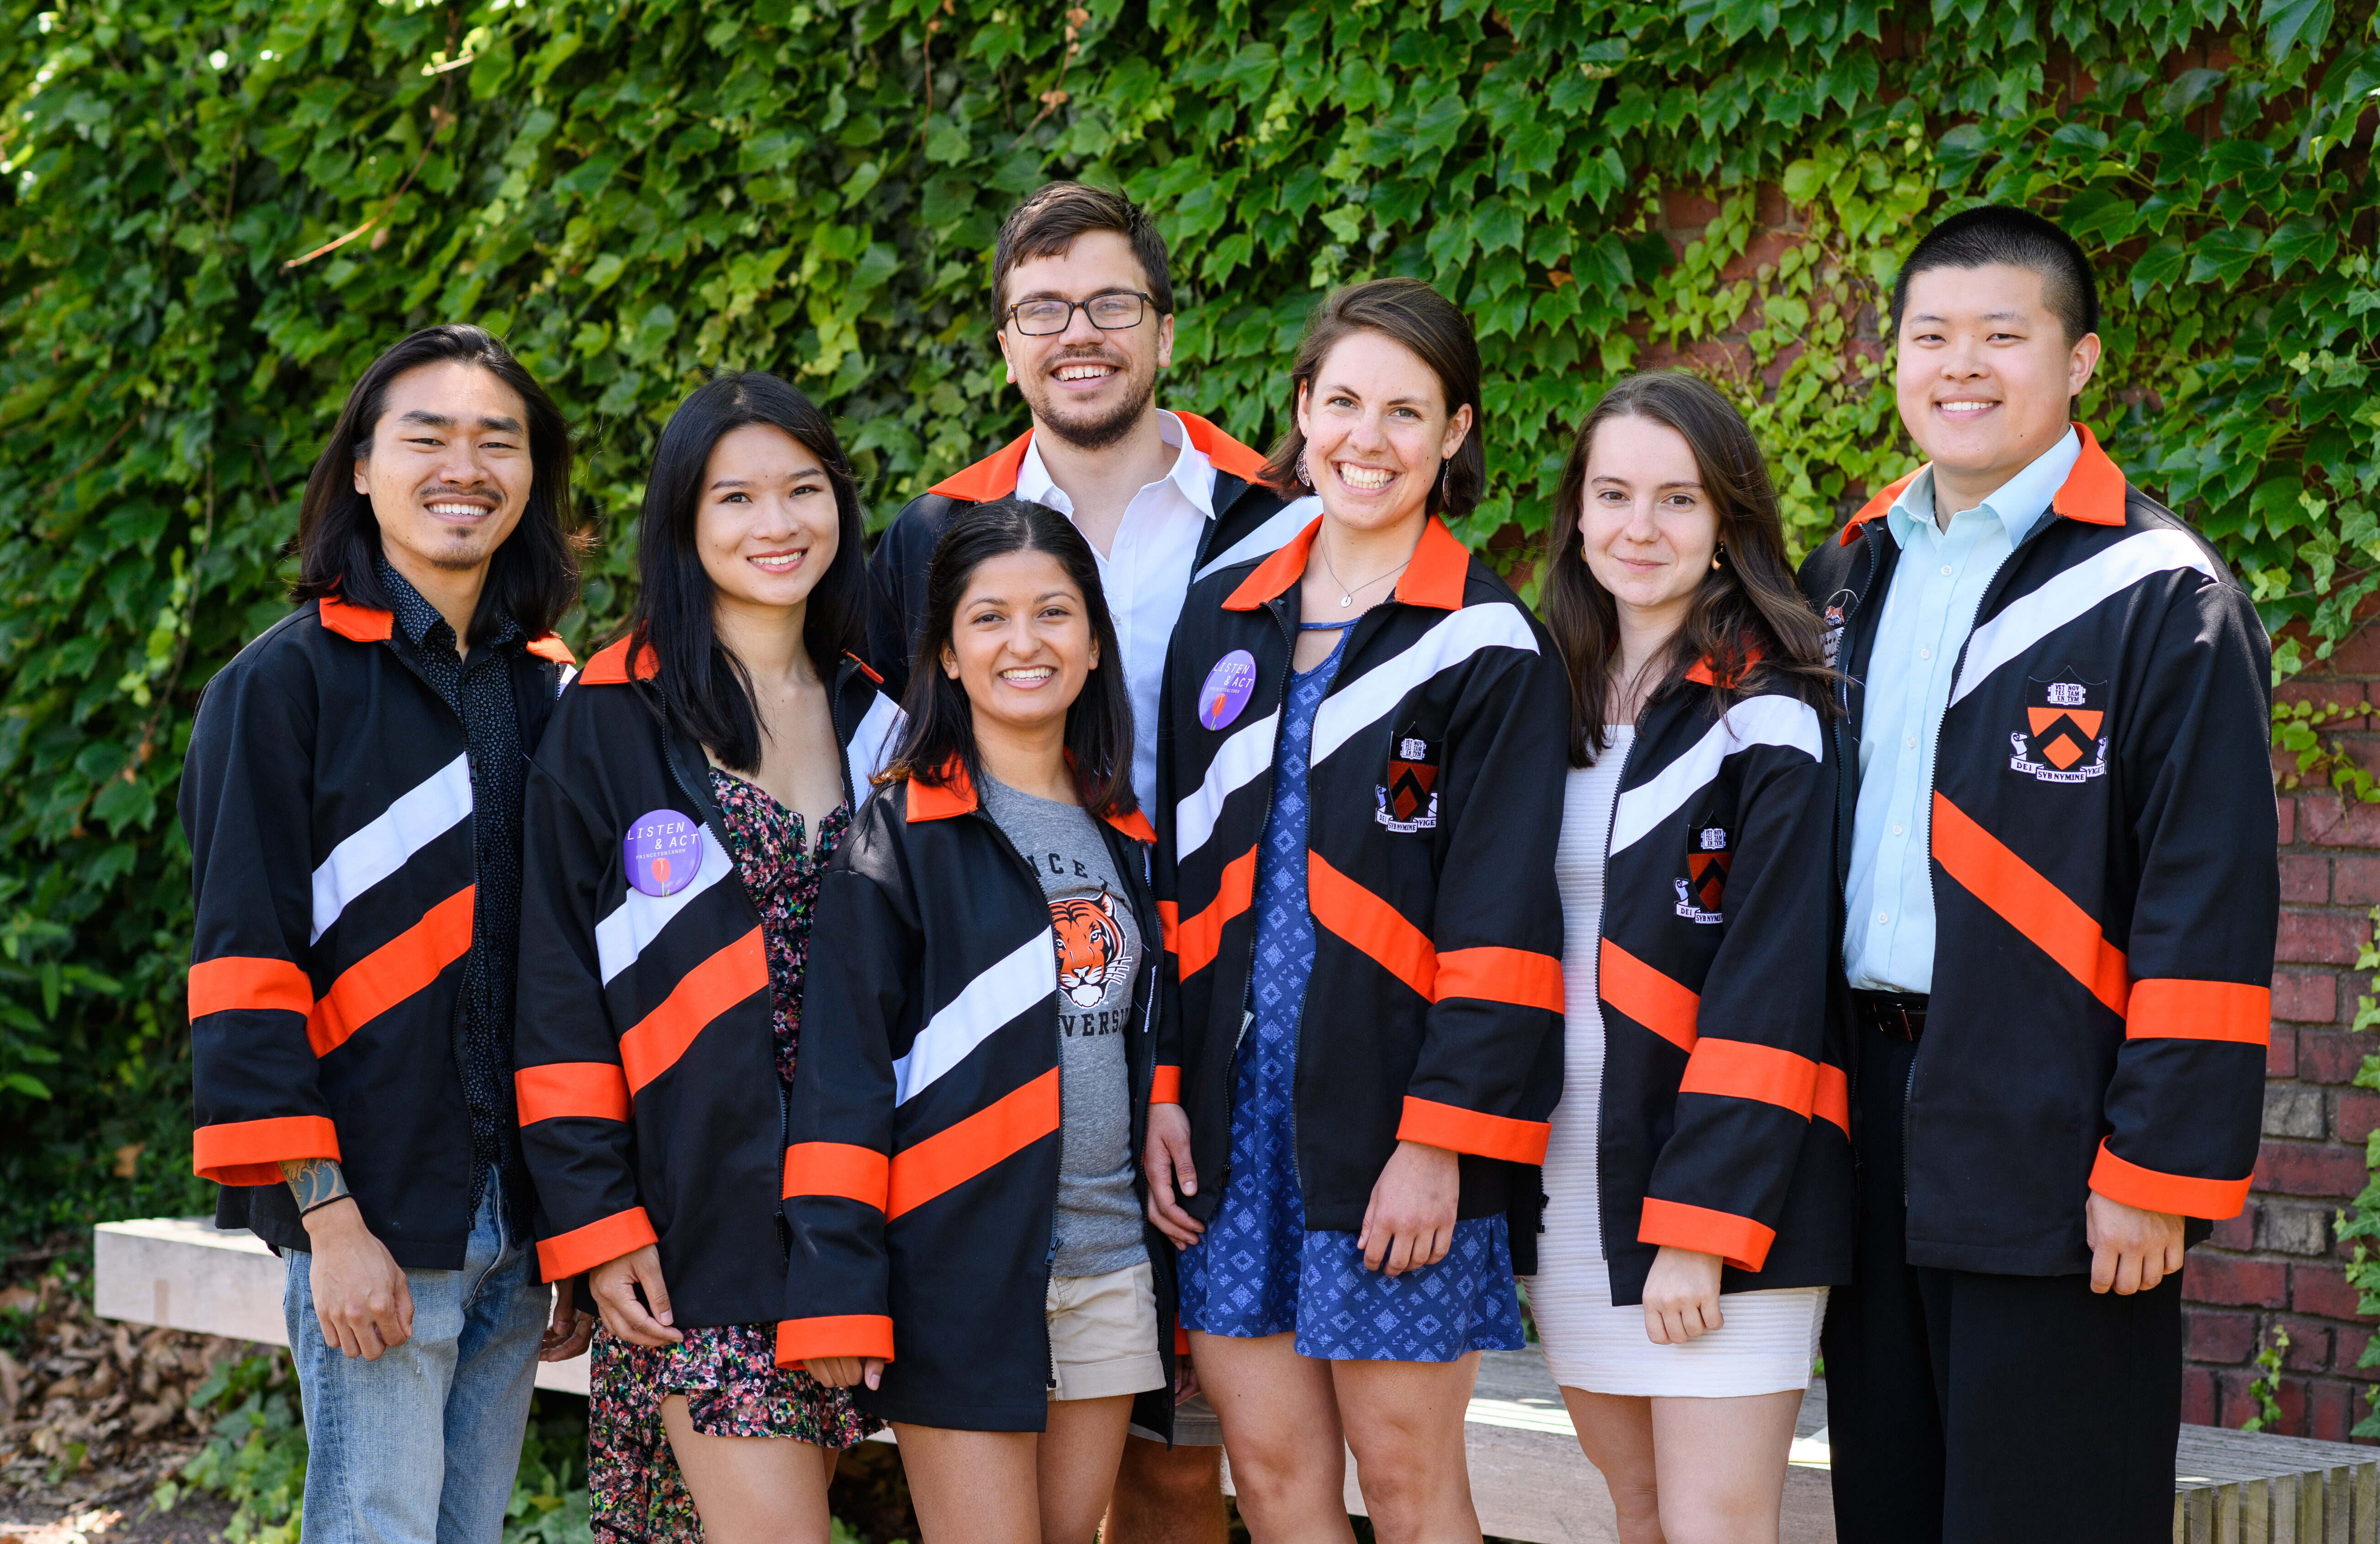 Princeton students pose in their class robes.